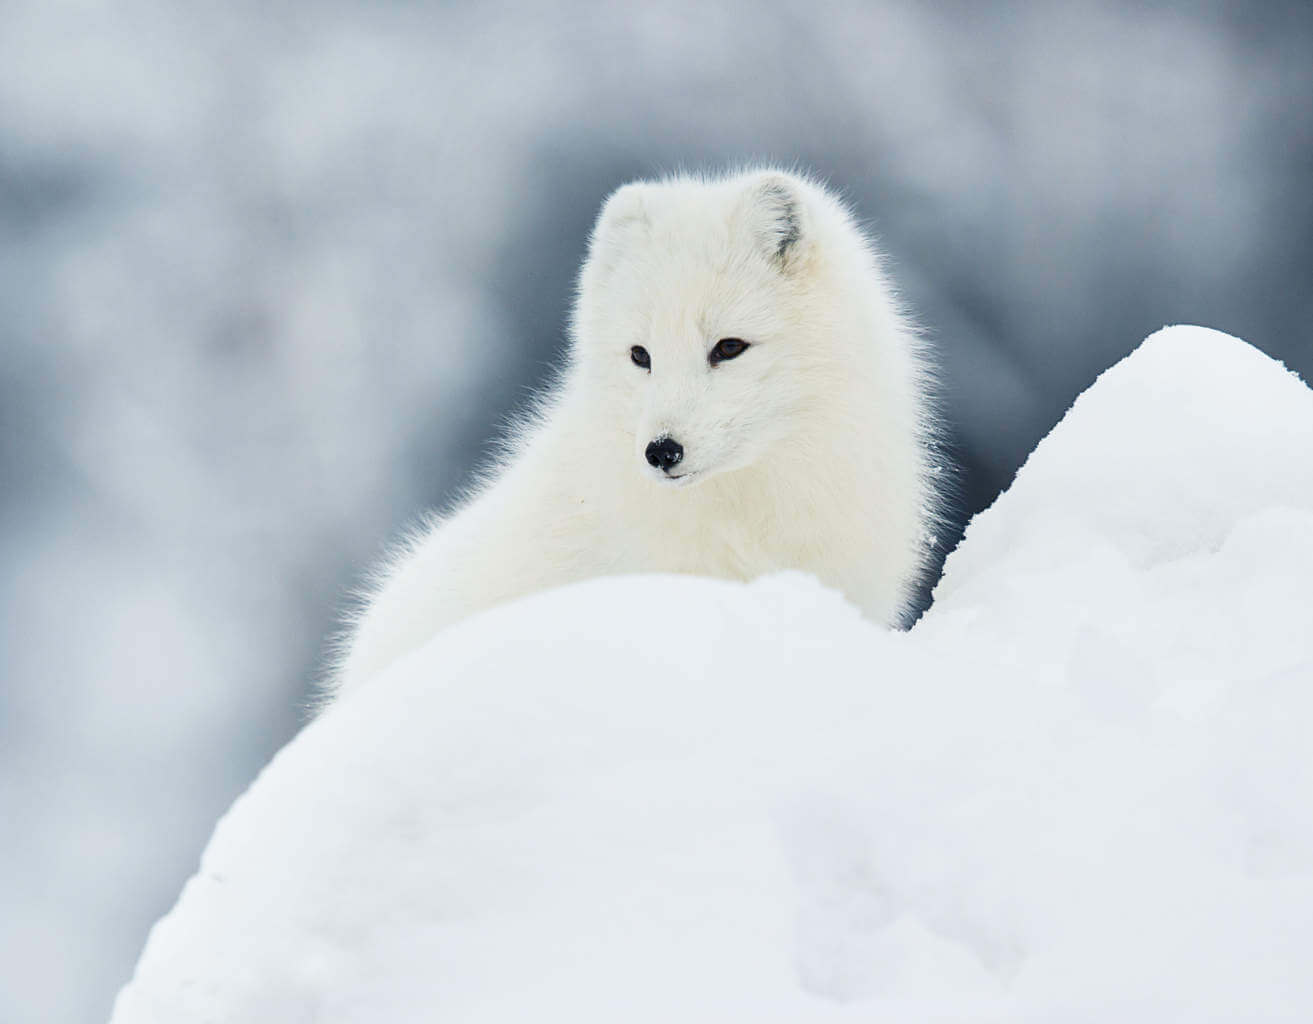 An Arctic Fox in the winter, with its white coat - perfect for blending in with its snowy surroundings.